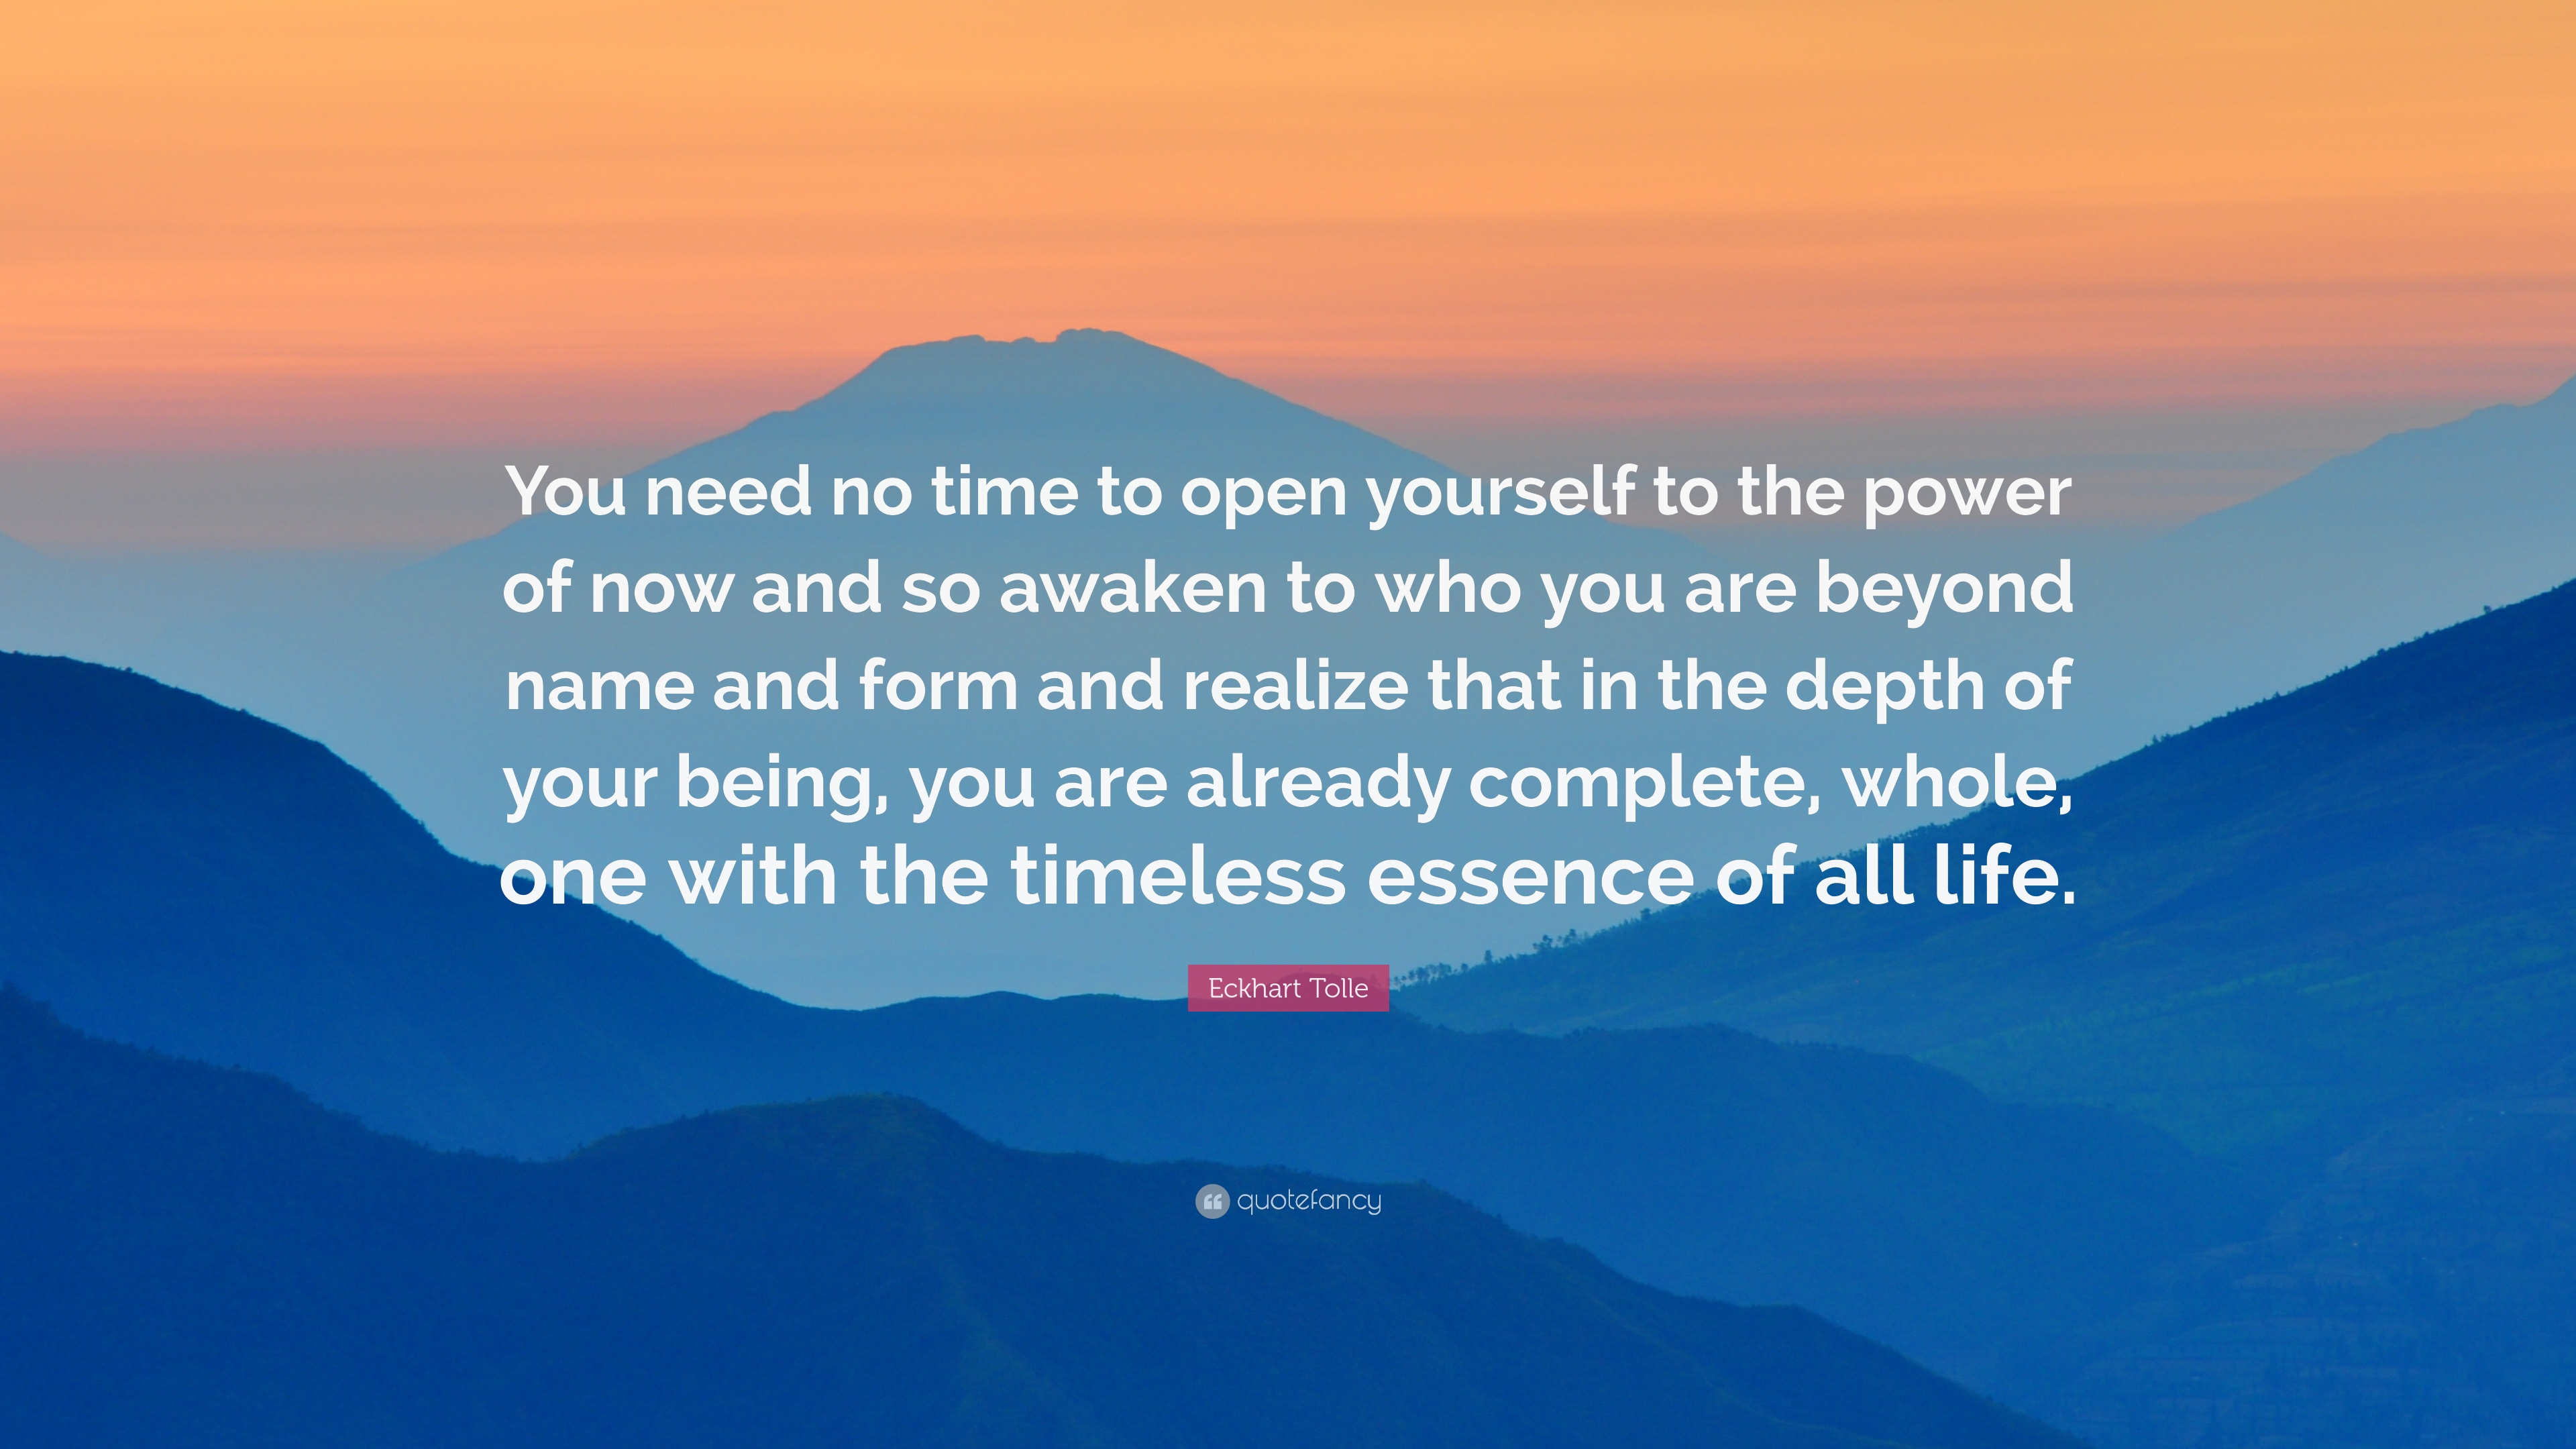 "The Power Of Now Quotes Inspiration Eckhart Tolle Quote ""You Need No Time To Open Yourself To The"